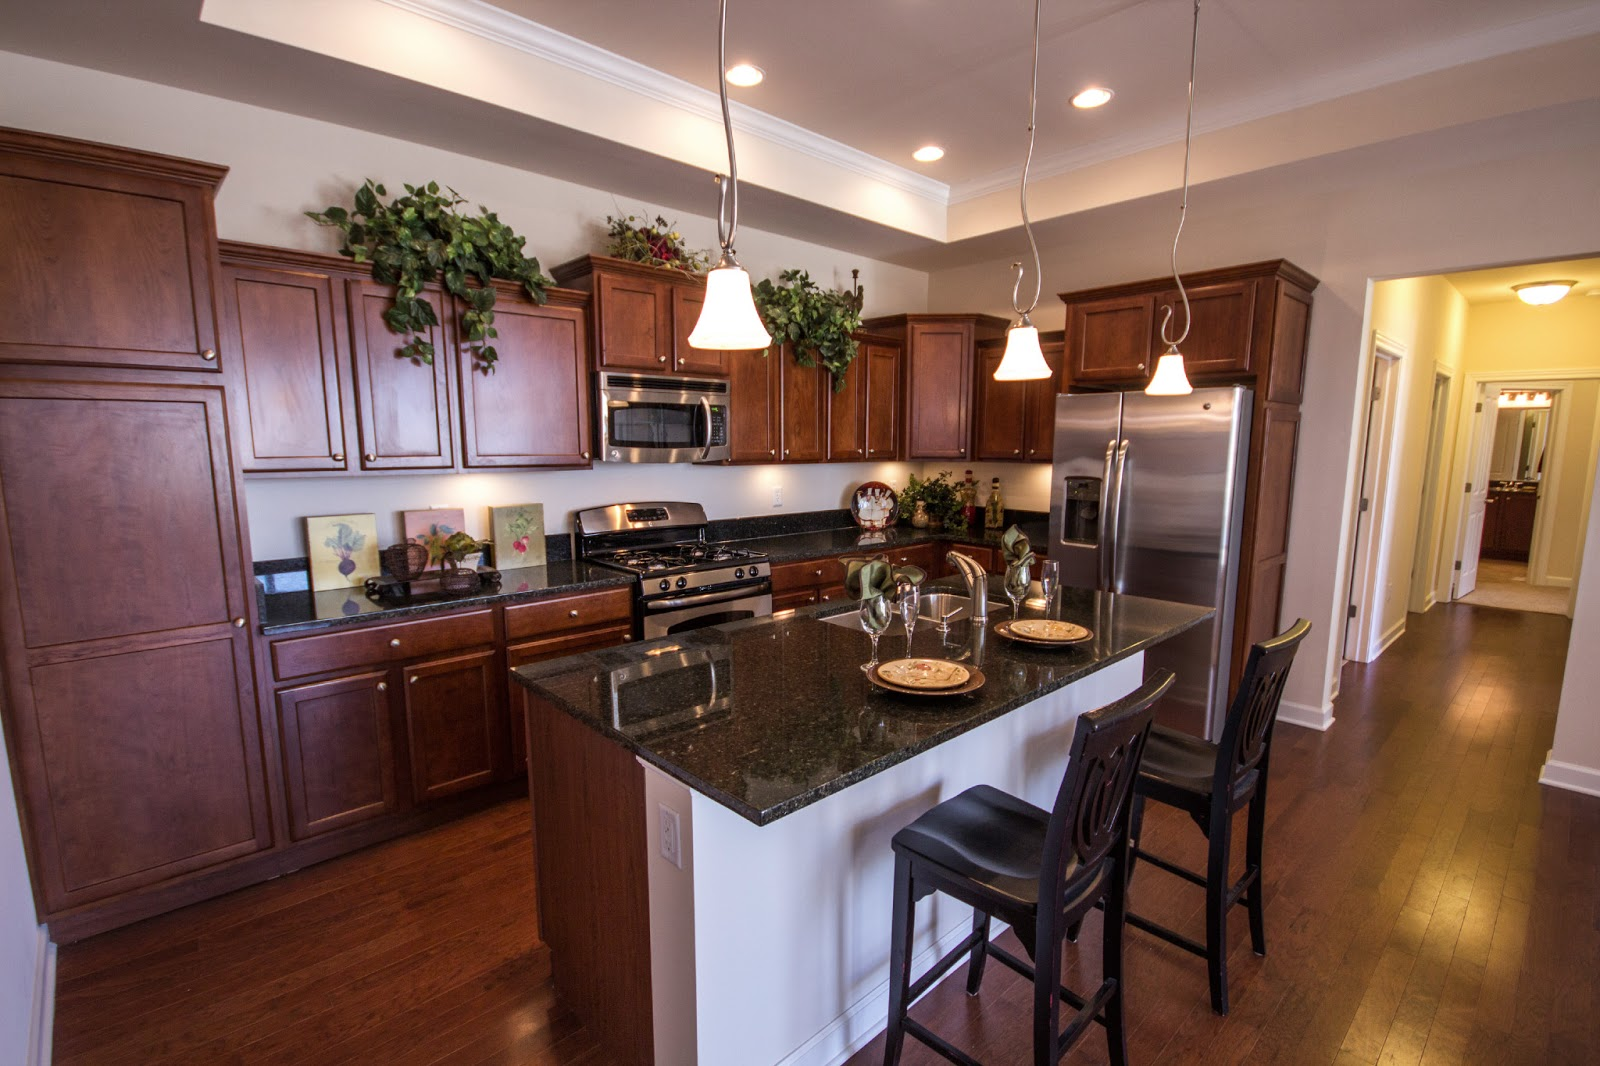 Wilcox communities an epcon community builder upgrade Kitchen remodeling valparaiso indiana